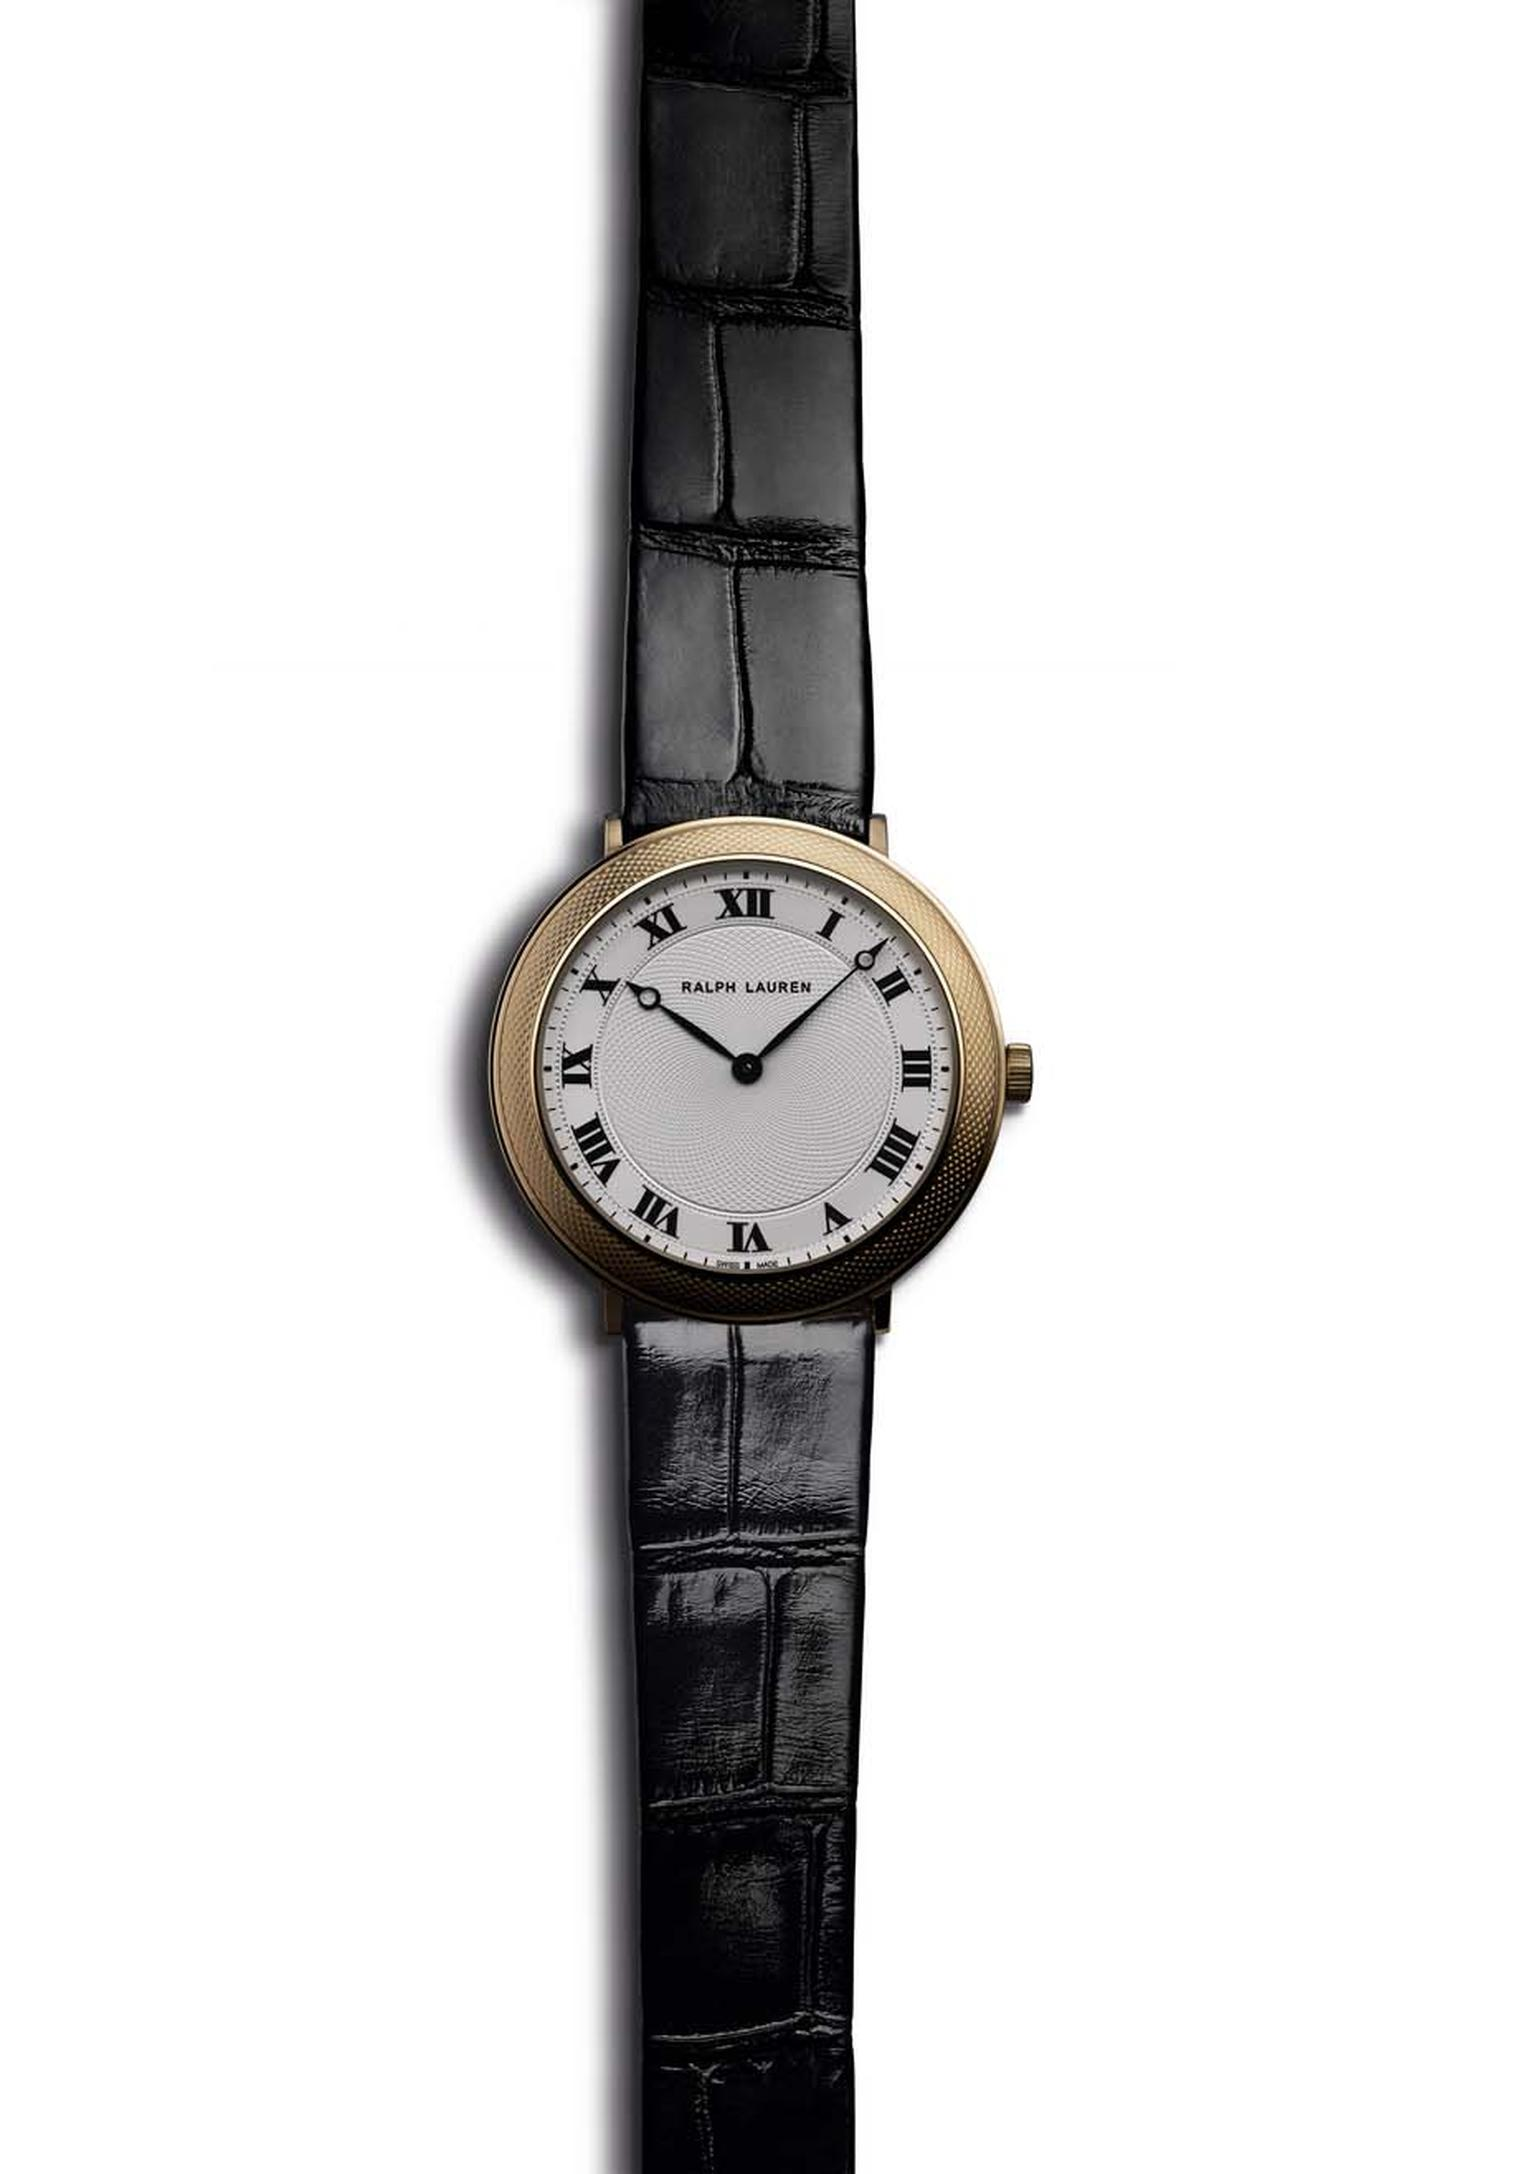 Ralph Lauren Slim Classique 32mm watch in rose gold, decorated on the bezel with guilloché engraving